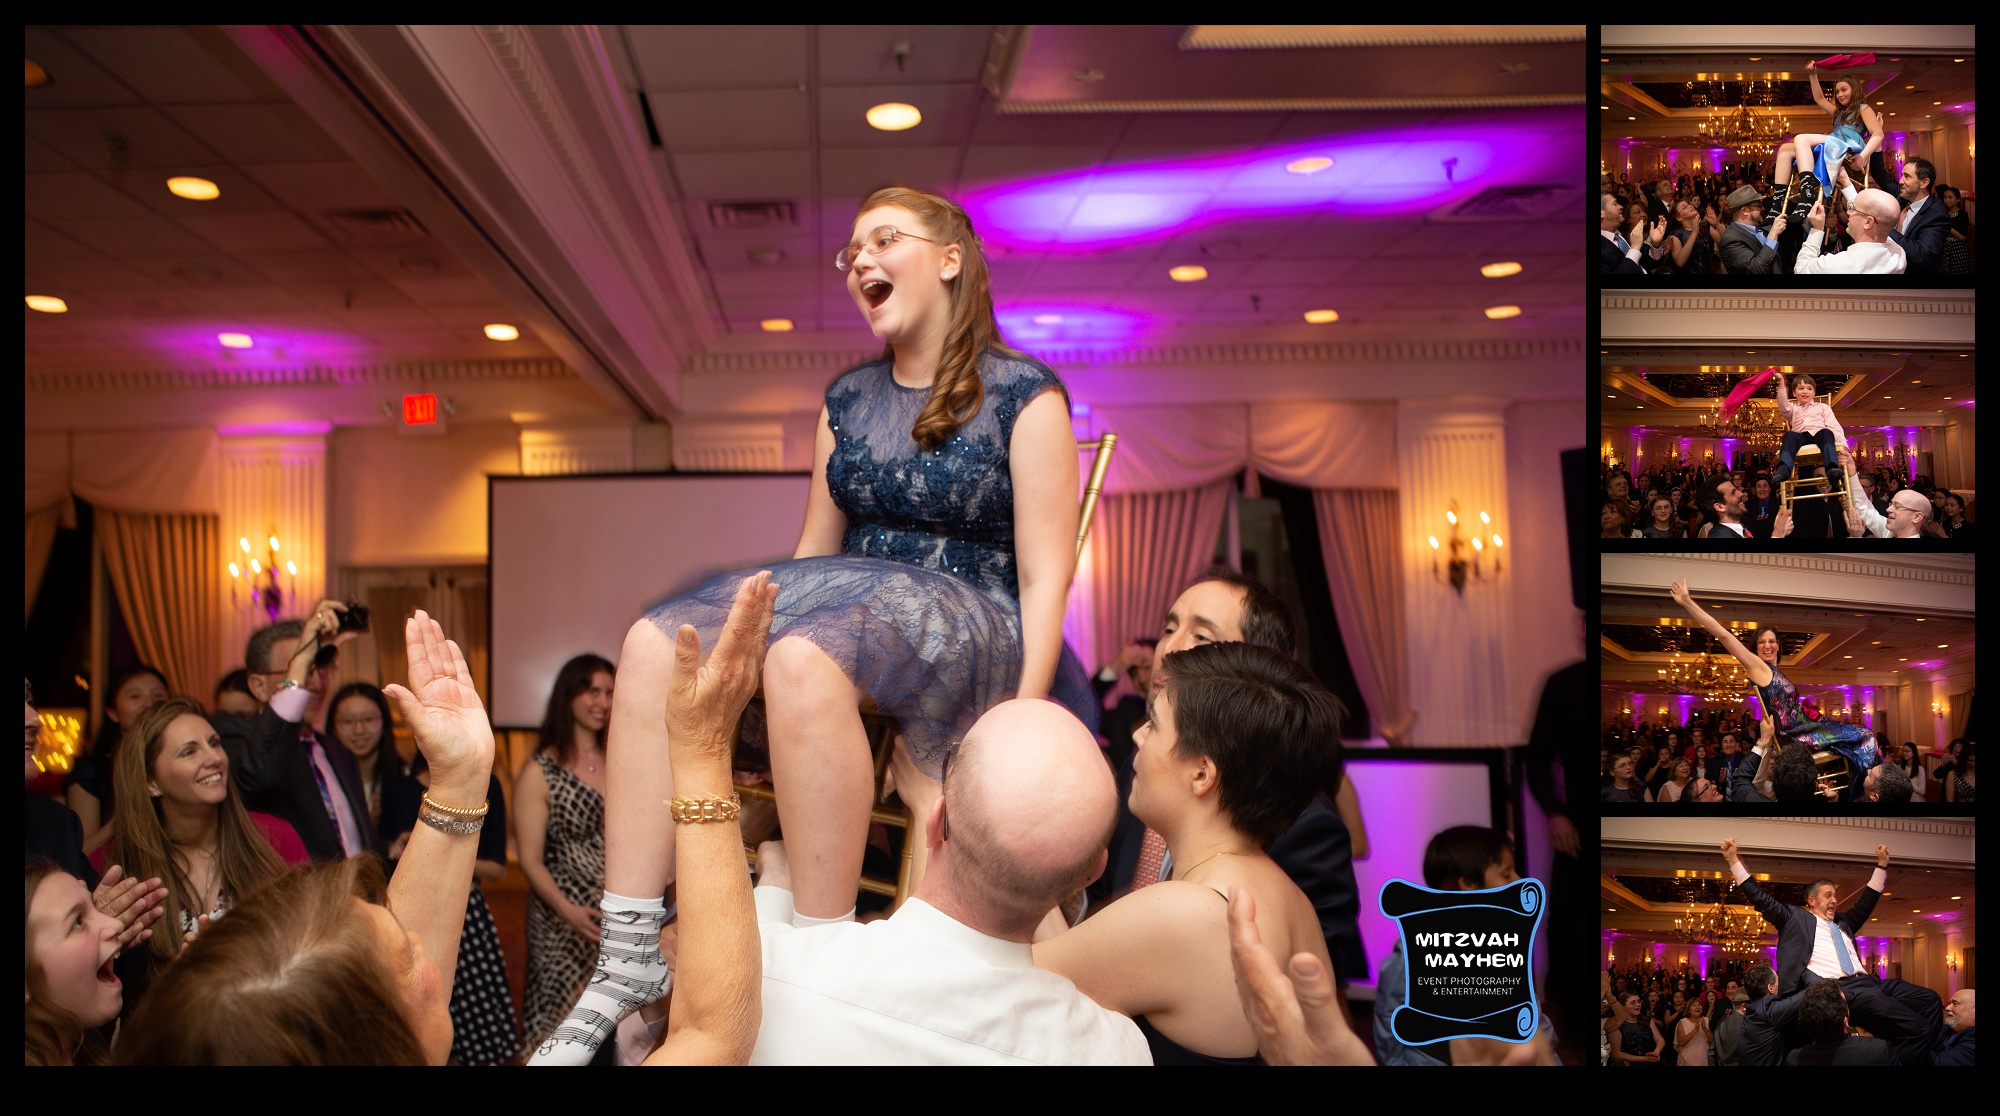 nj-bat-mitzvah-mayfair-farms-0577.JPG